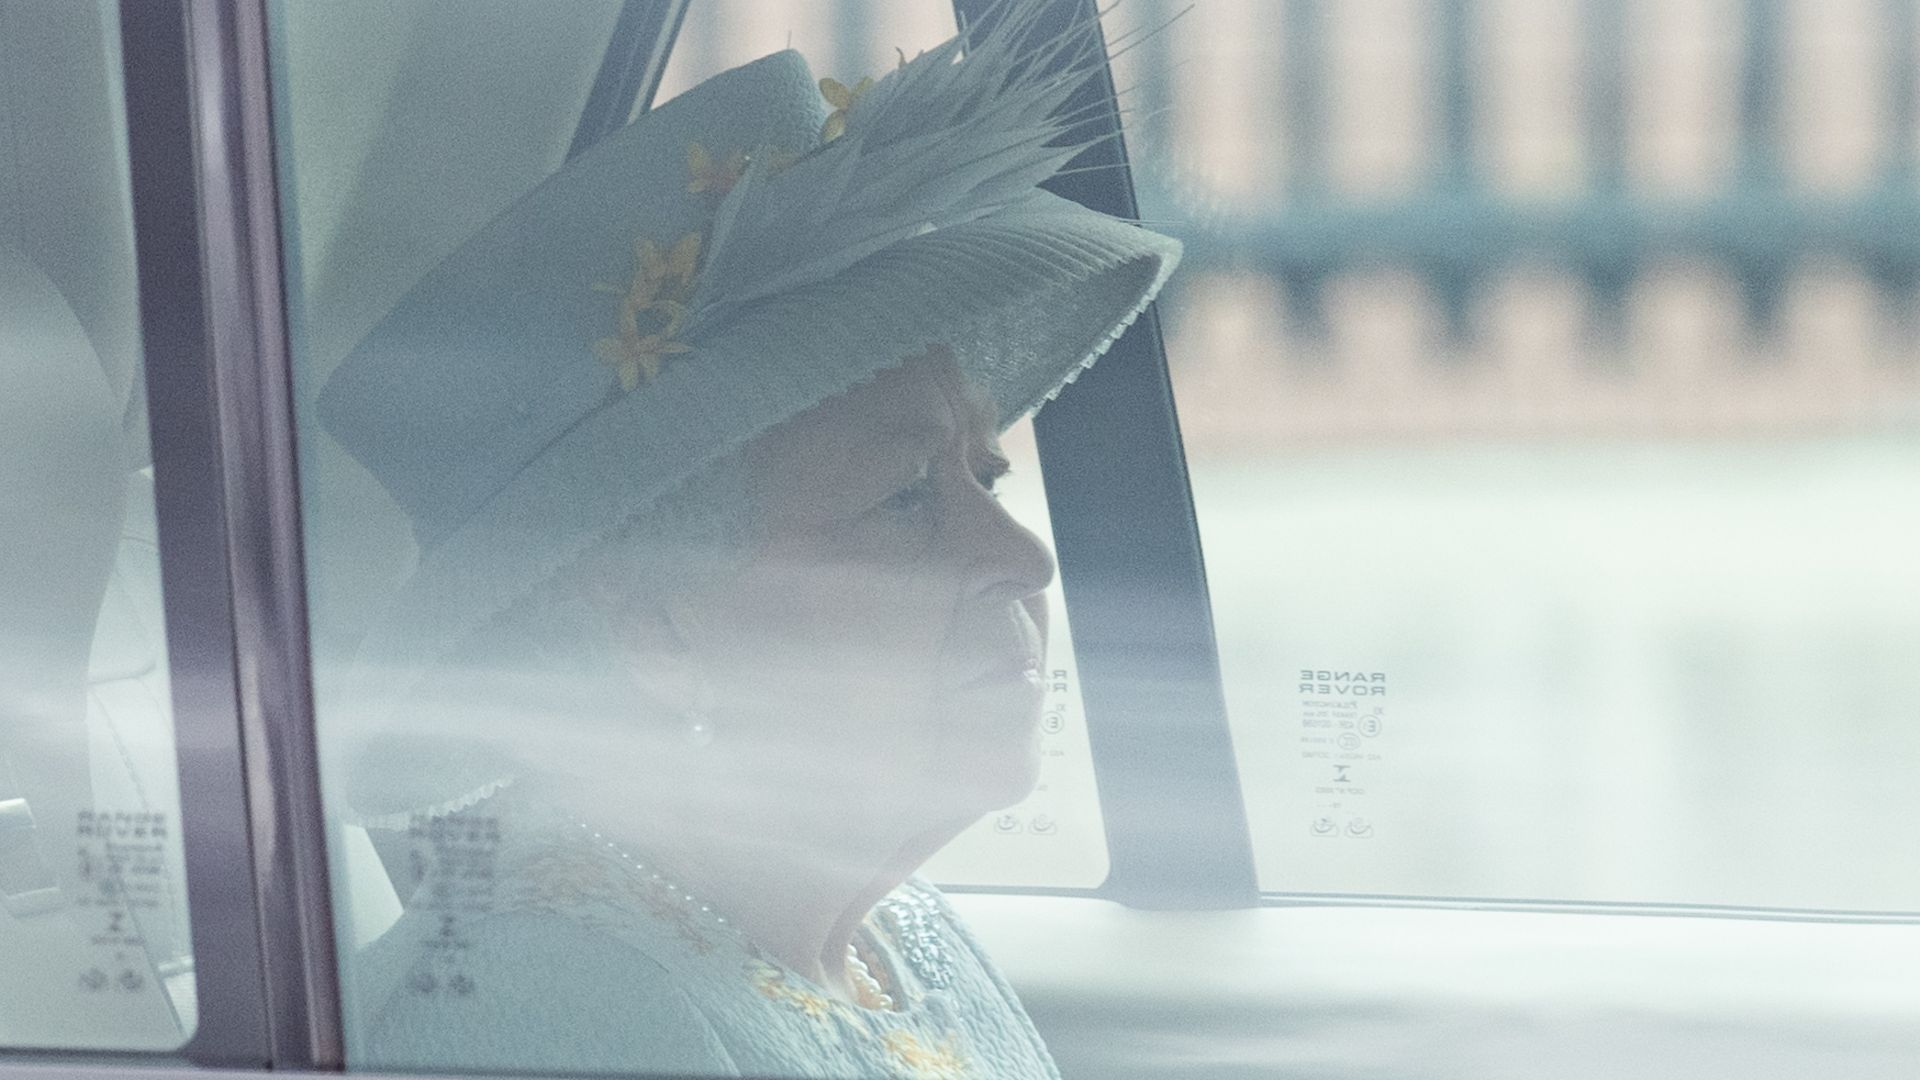 Queen Elizabeth II leaves Buckingham Palace by car to deliver the Queen's Speech during the State Opening of parliament in the House of Lords at the Palace of Westminster - Credit: PA